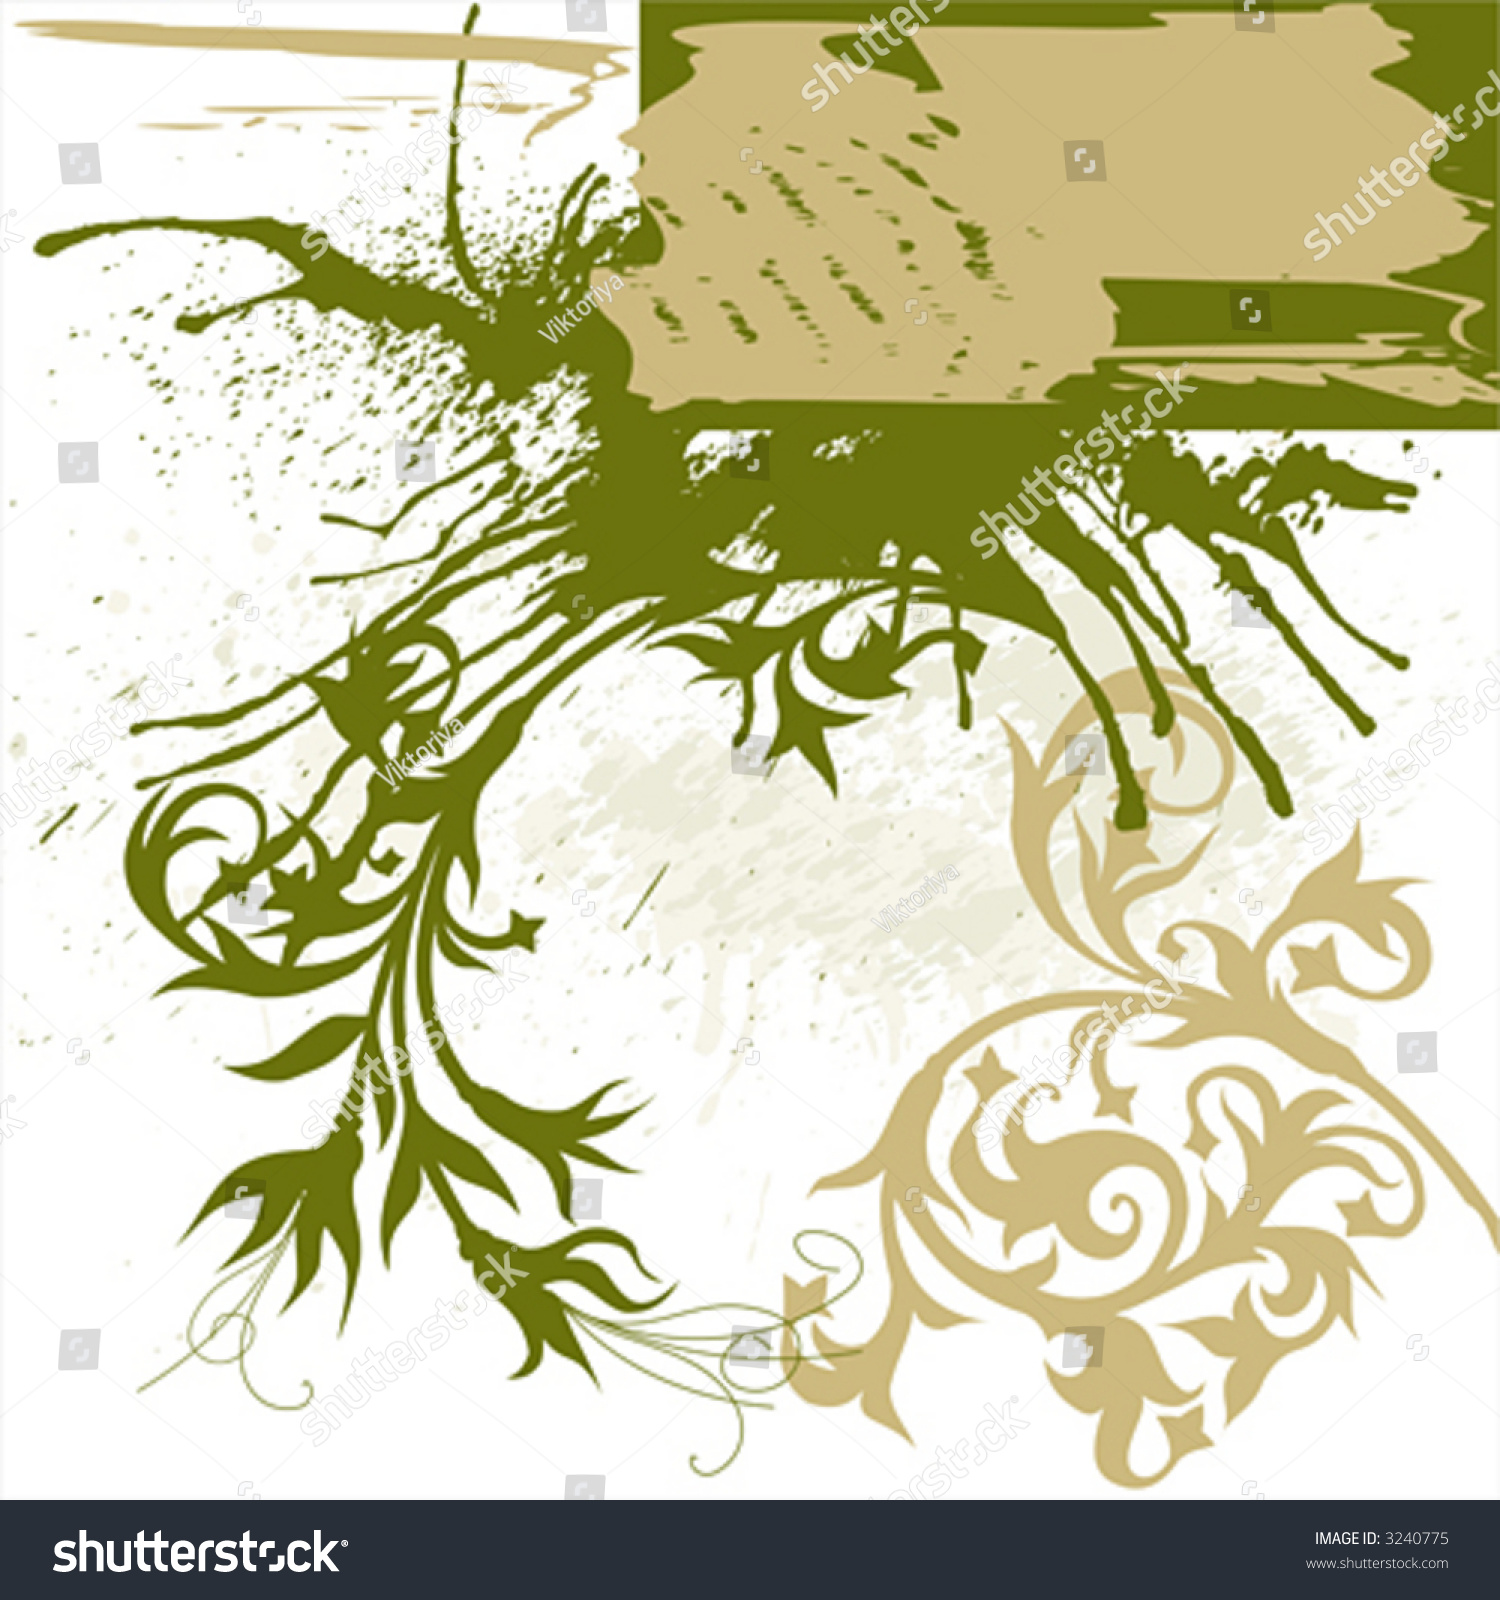 Calligraphy flowers ornament on beige grunge background